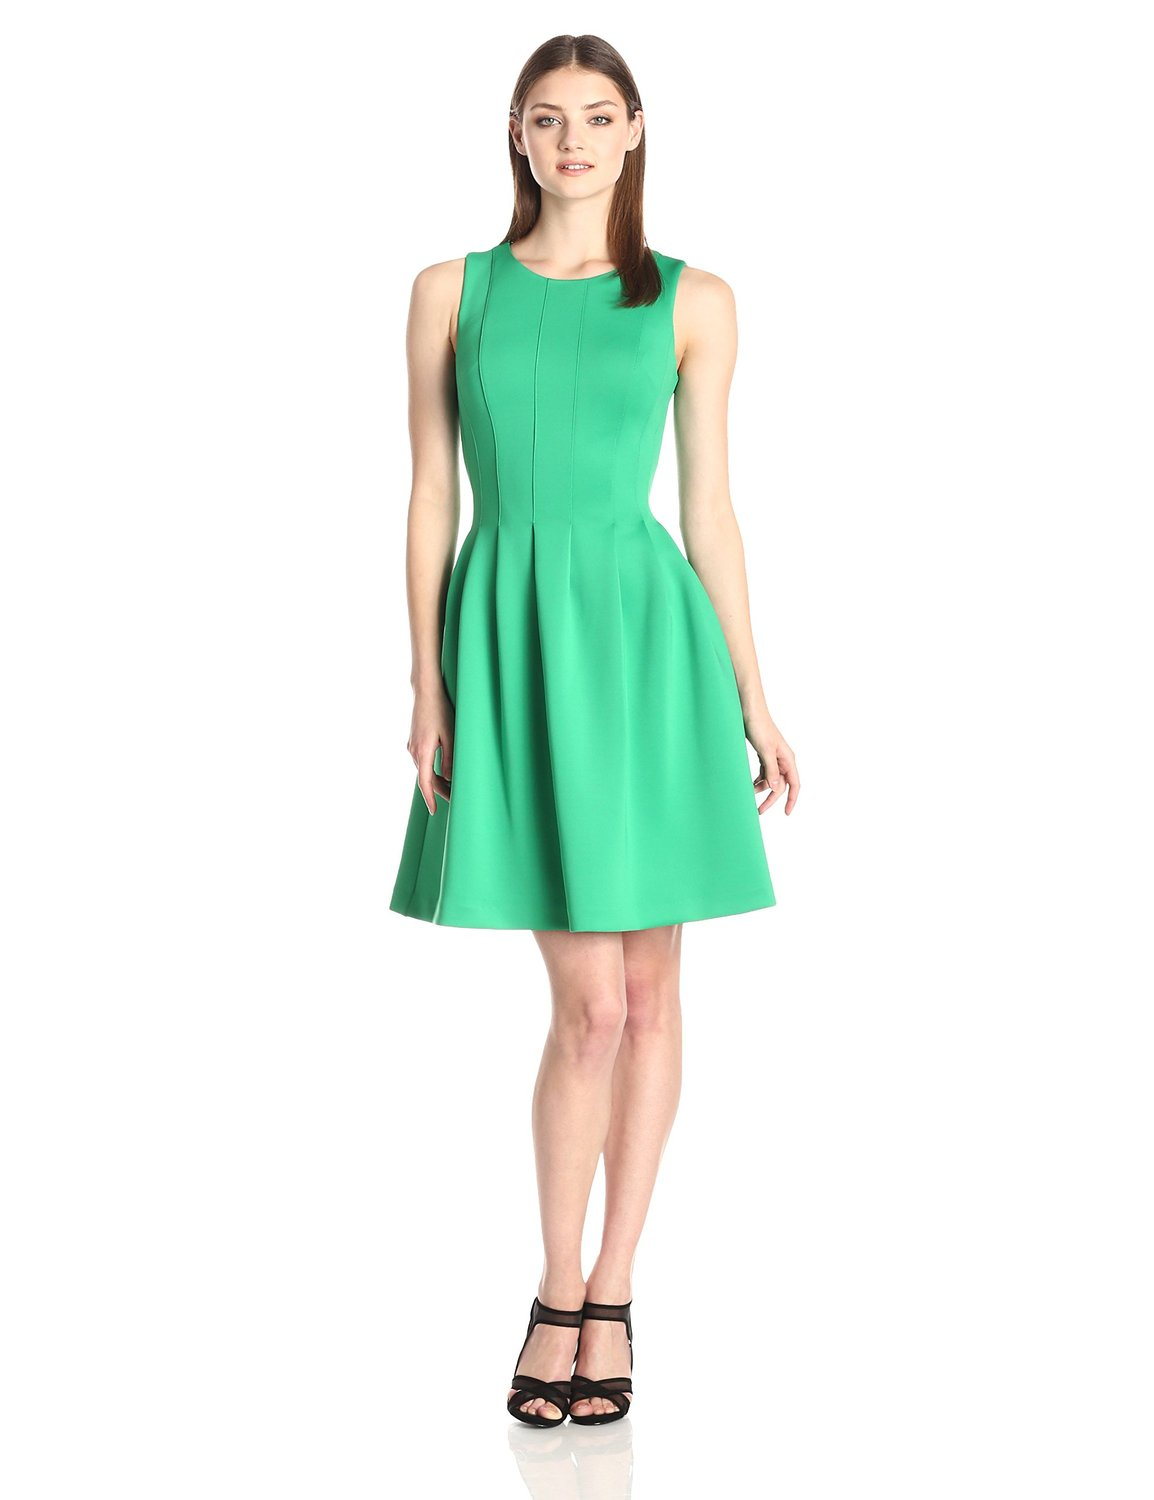 Spring clothing for women